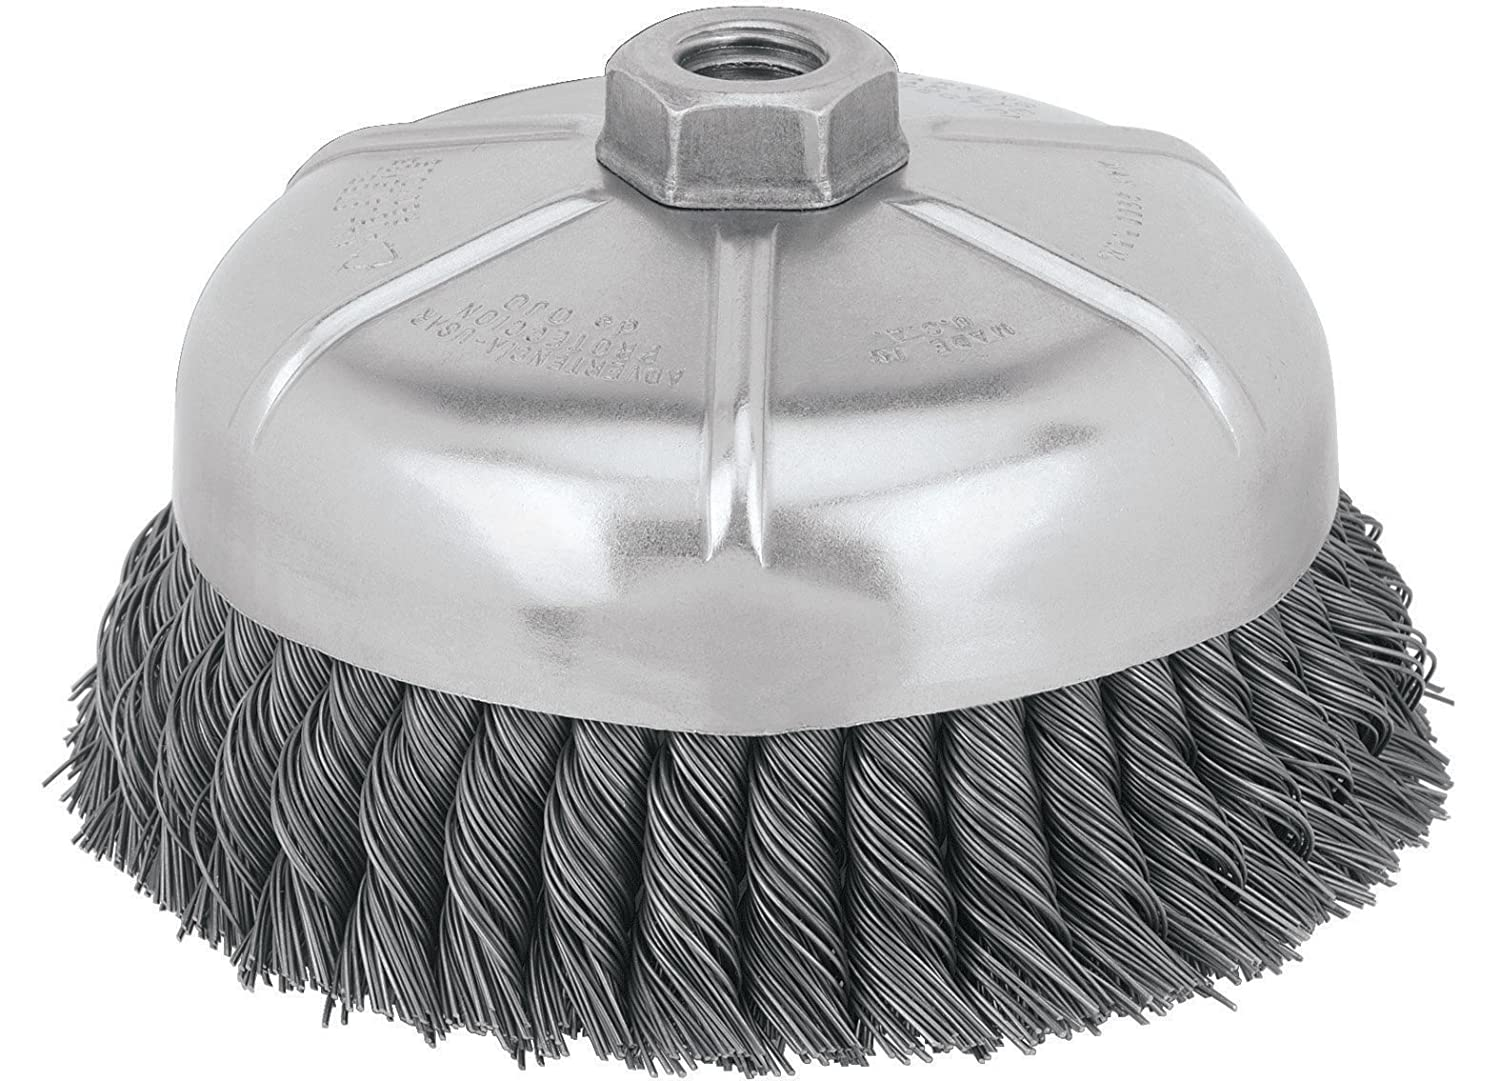 DEWALT DW4917 6 Inch Knotted Cup Wire Brush